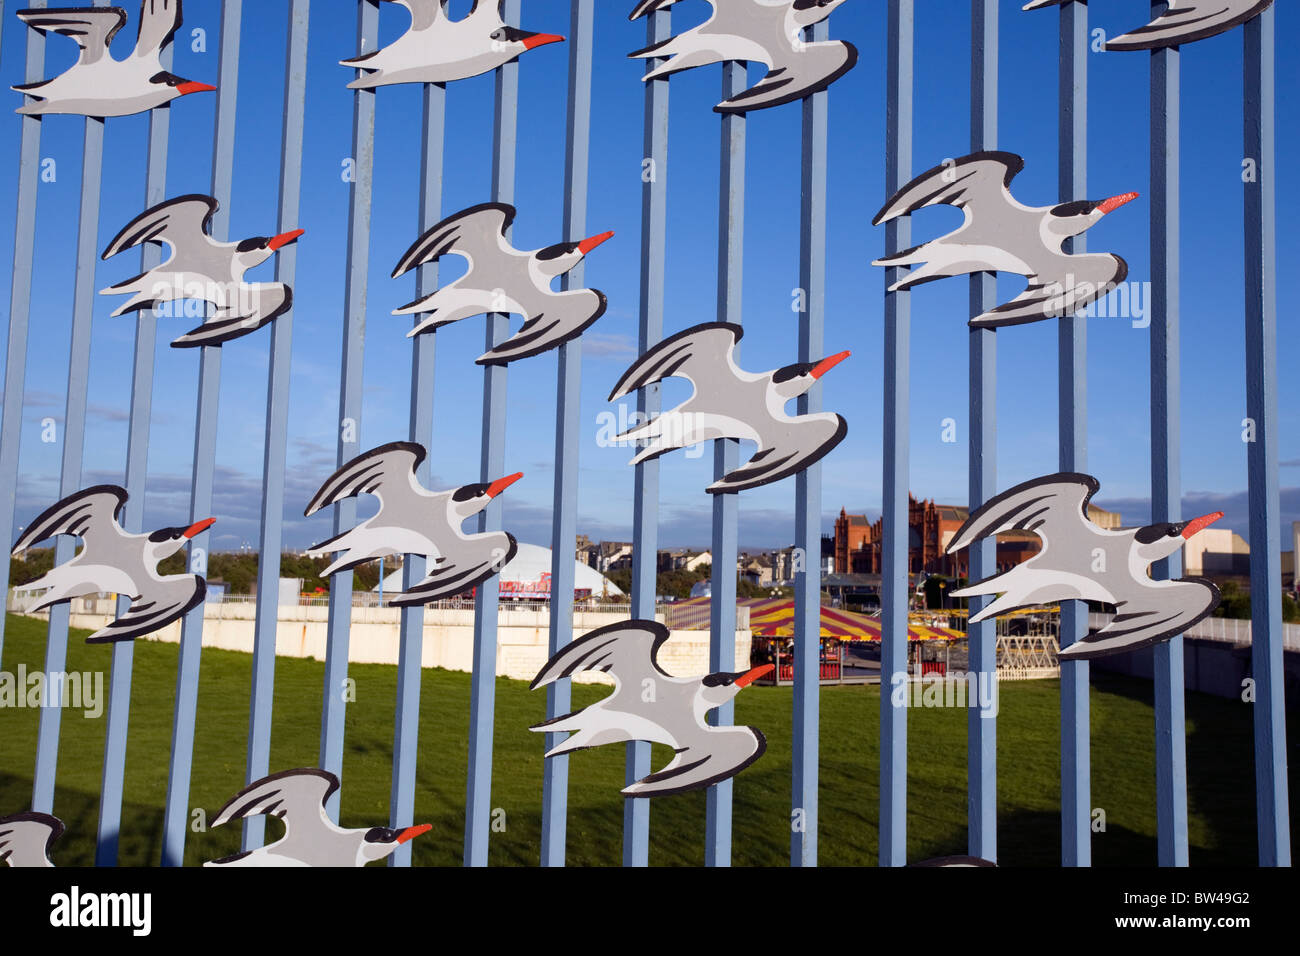 Cutout birds on fence, part of the Tern Project in Morecambe. - Stock Image